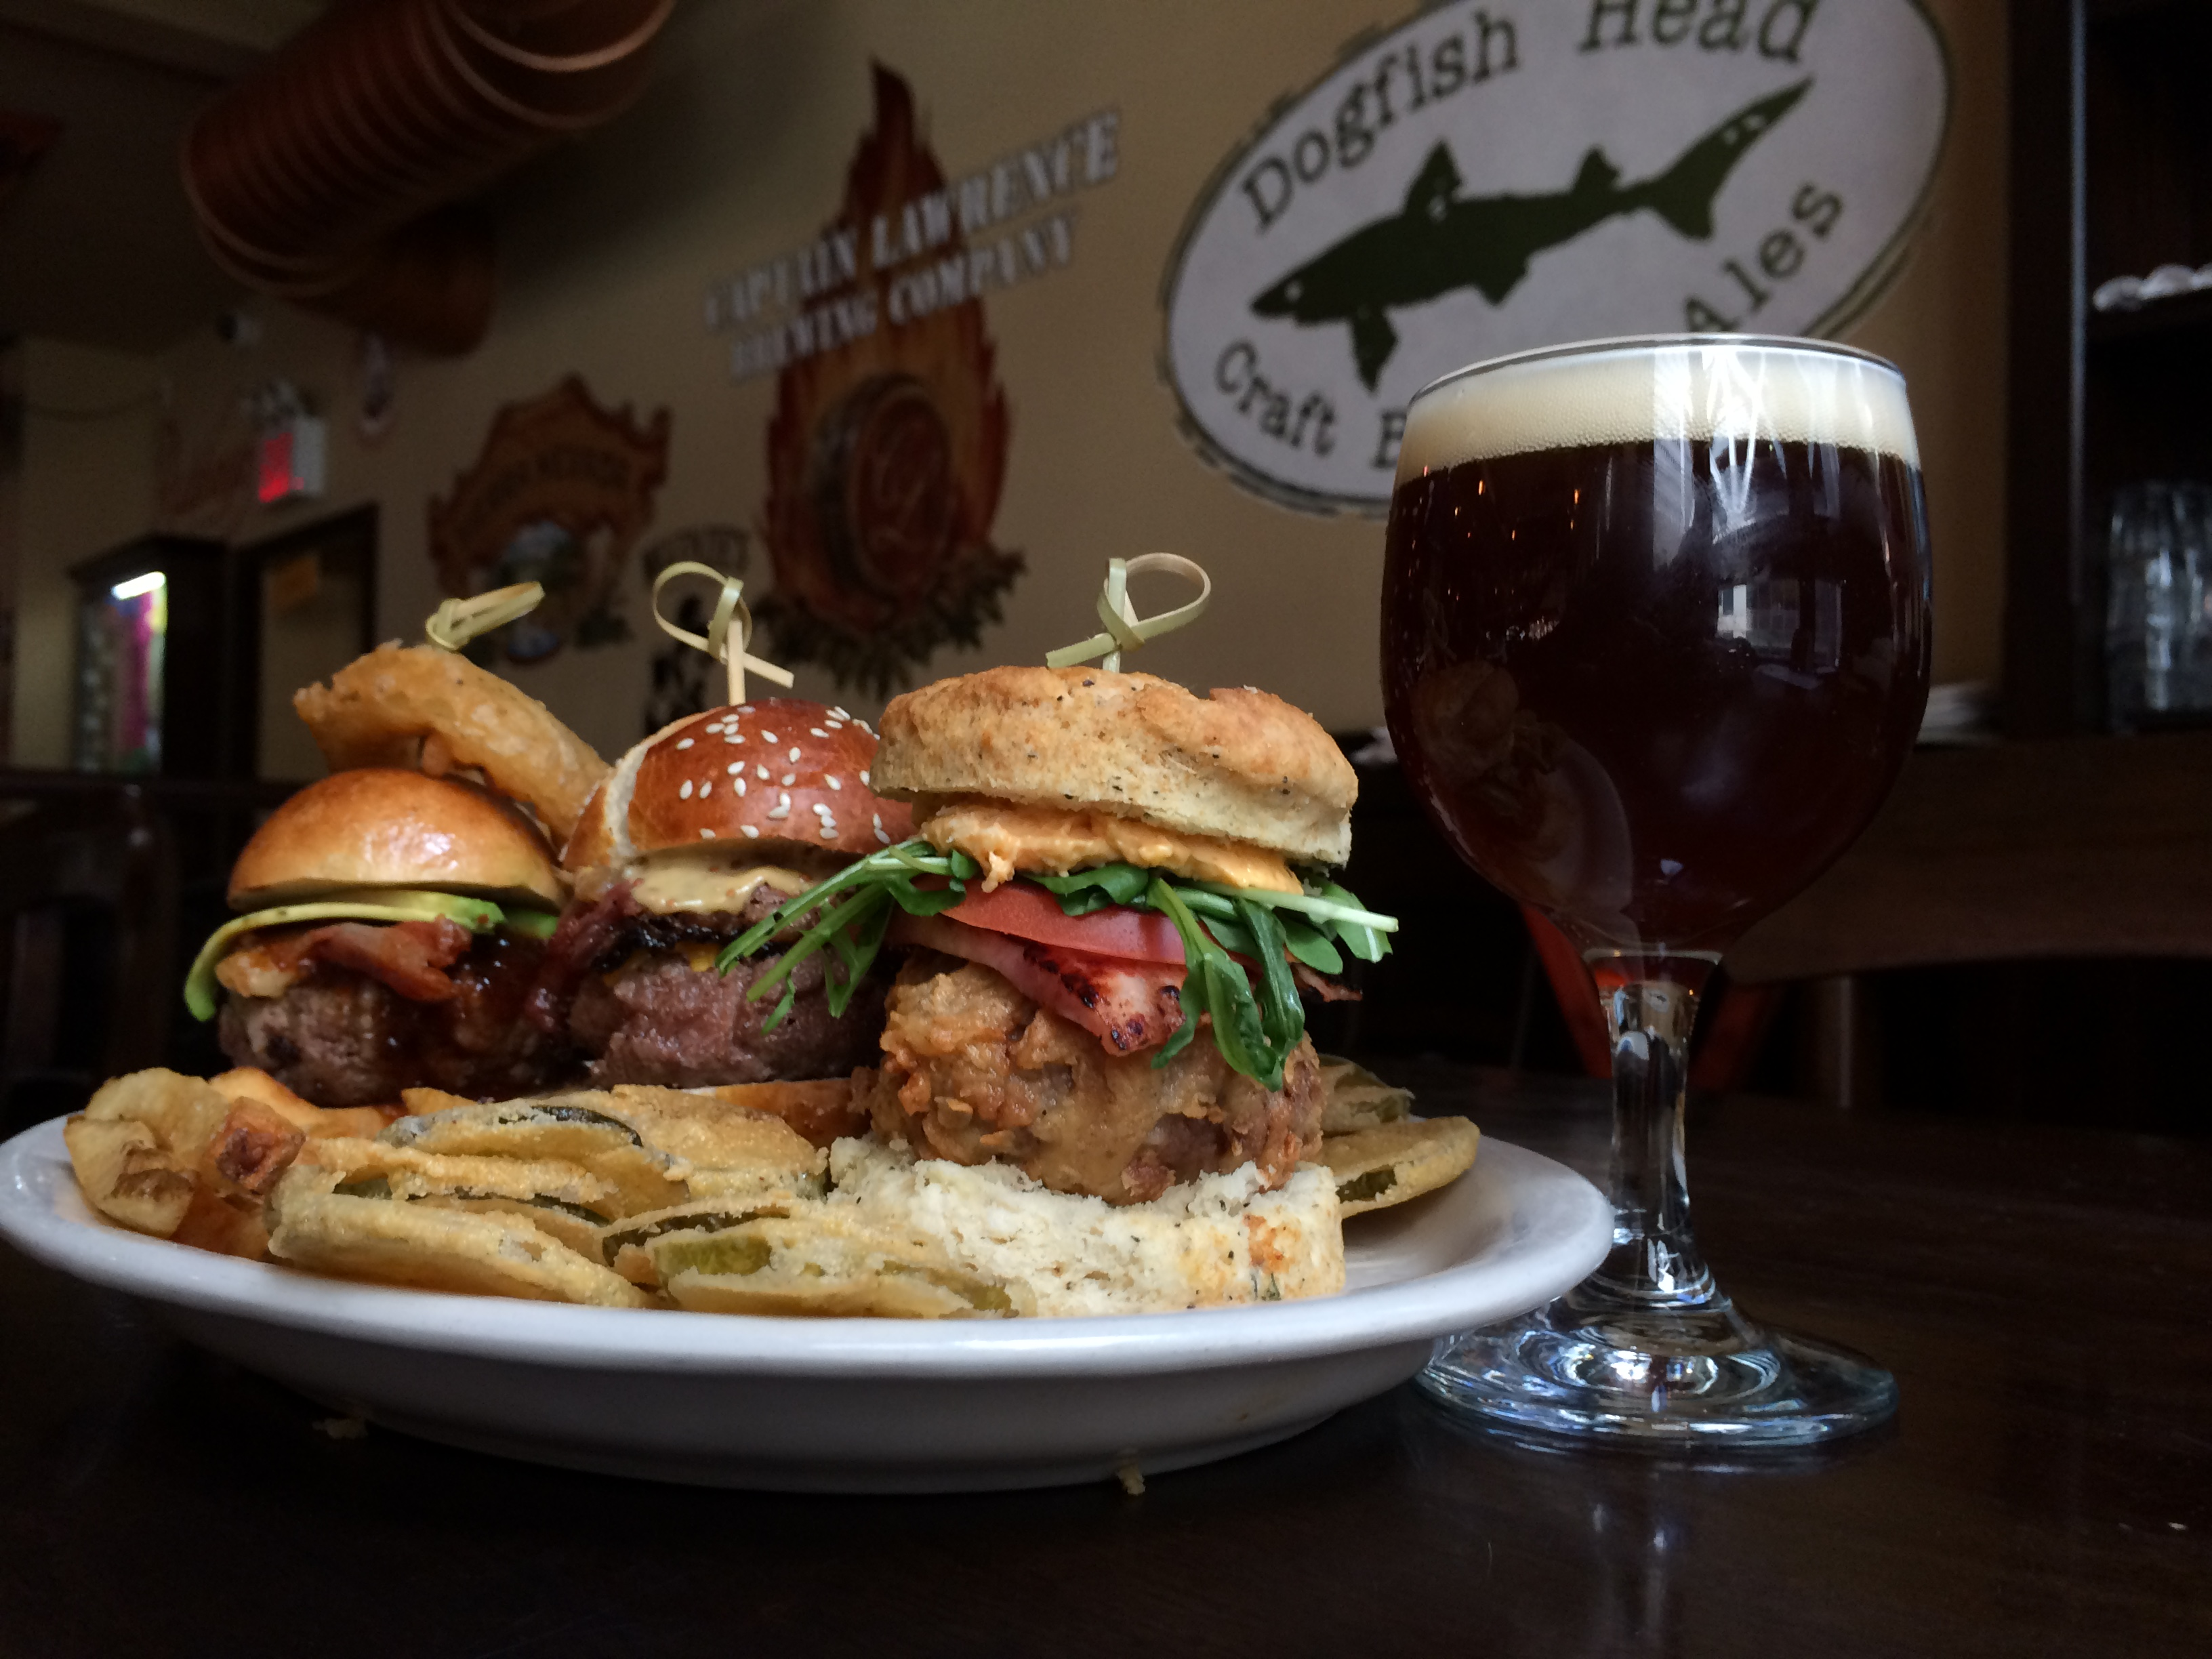 Beer-Authority-4th-Annual-NY-Burger-Week-2015-Burger-Photos-Schweid-and-Sons-042415_1002